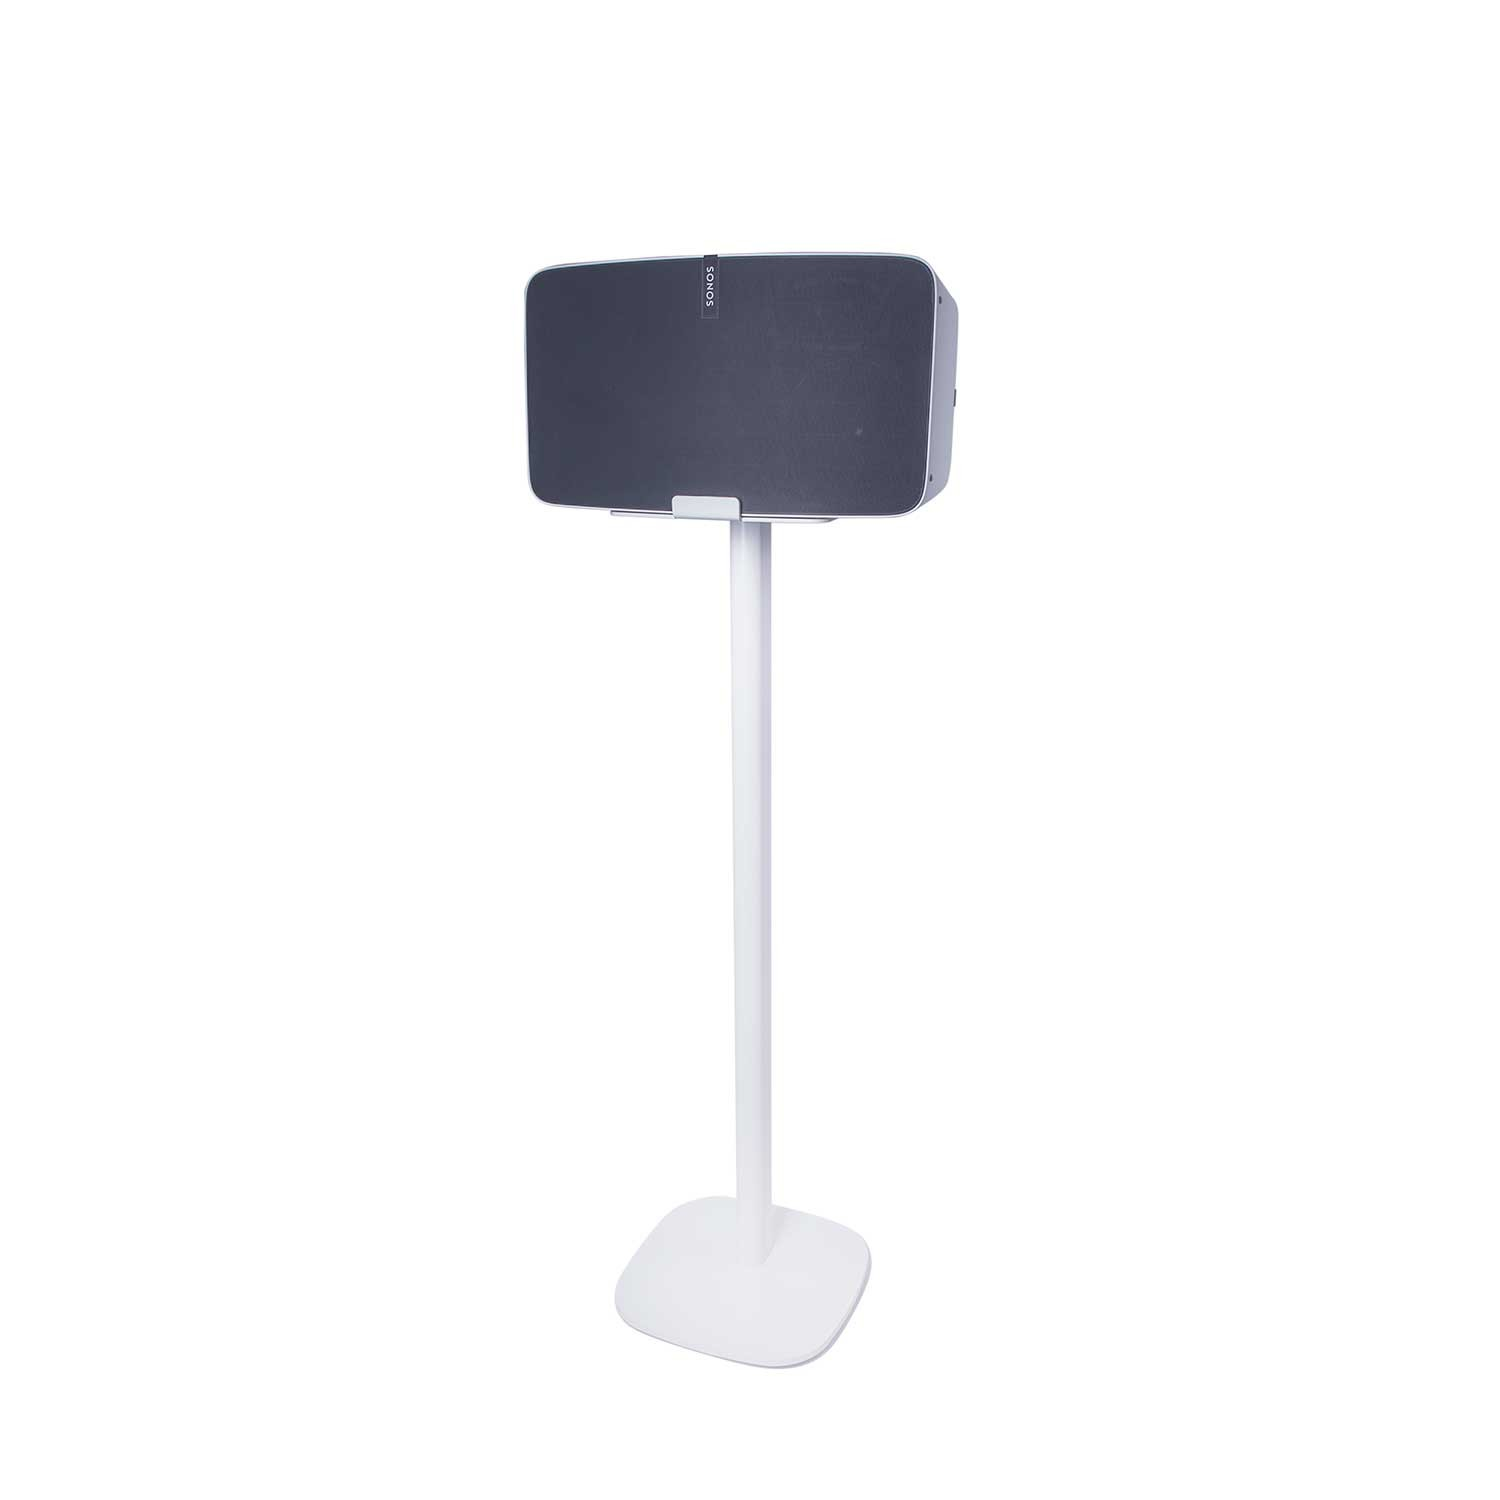 Vebos Floor Stand Sonos Play 5 White The Floor Stand For